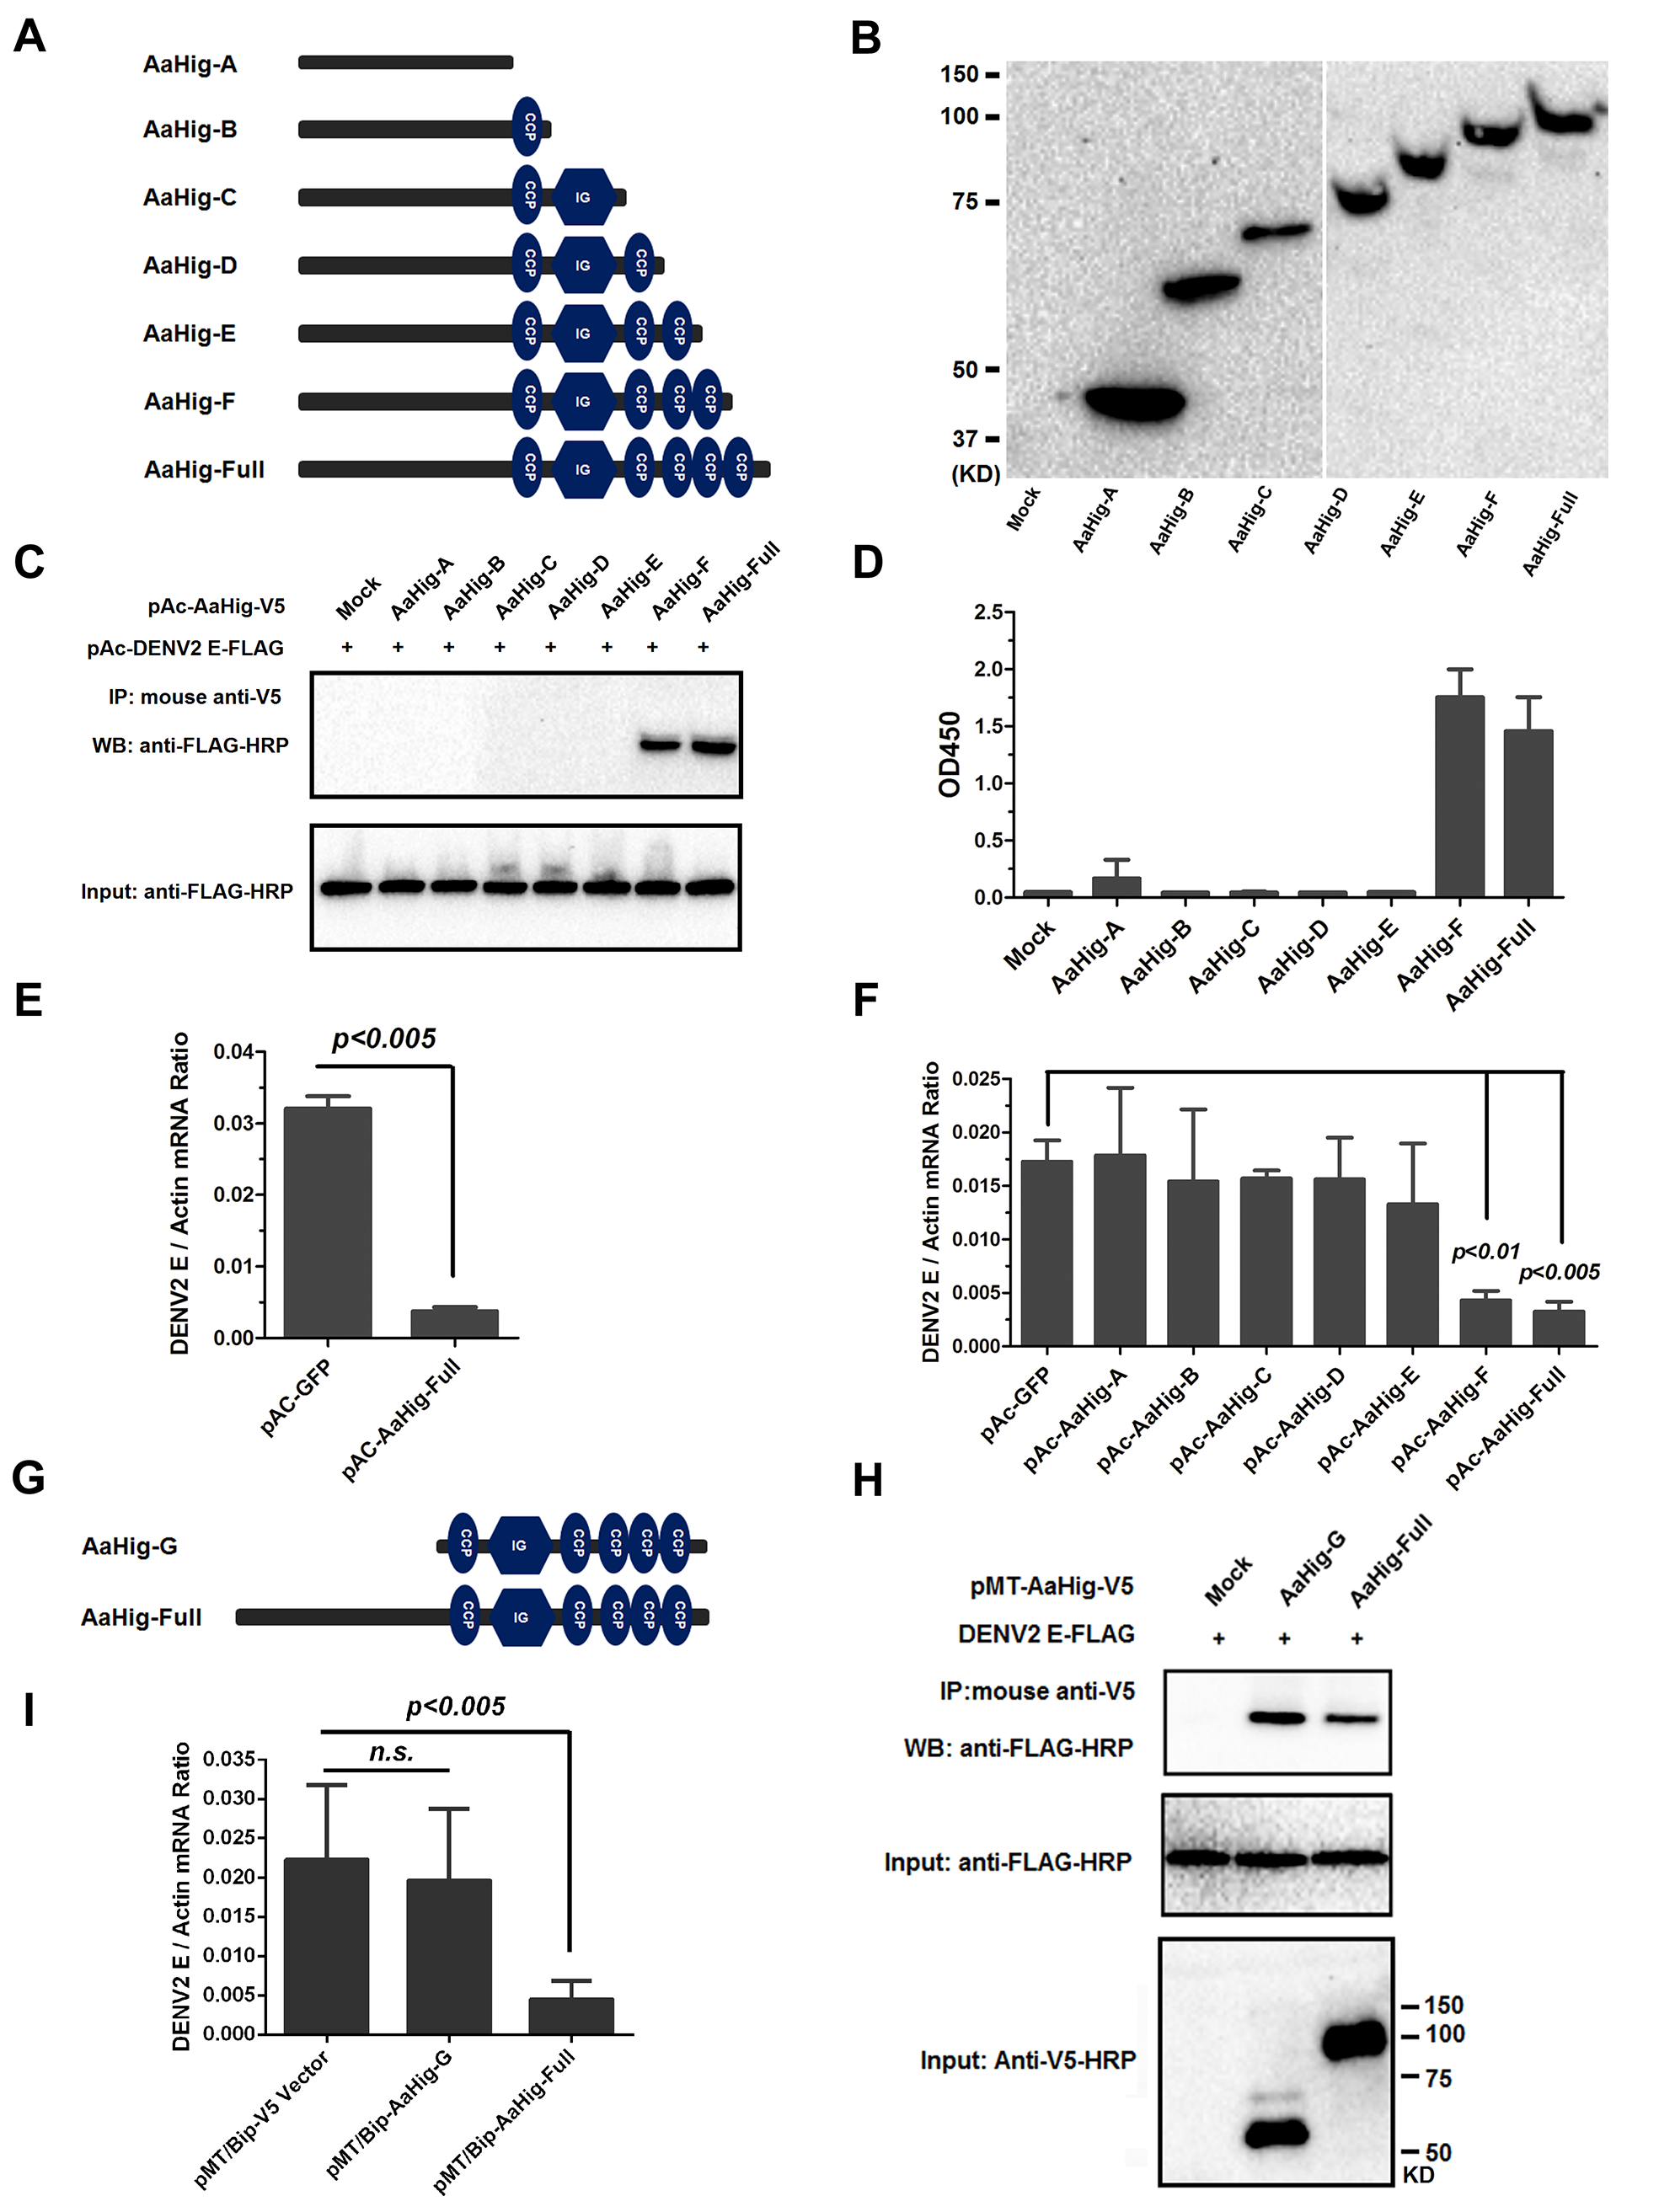 Both the viral interaction and membrane bound of AaHig are essential for the AaHig antiviral activity.